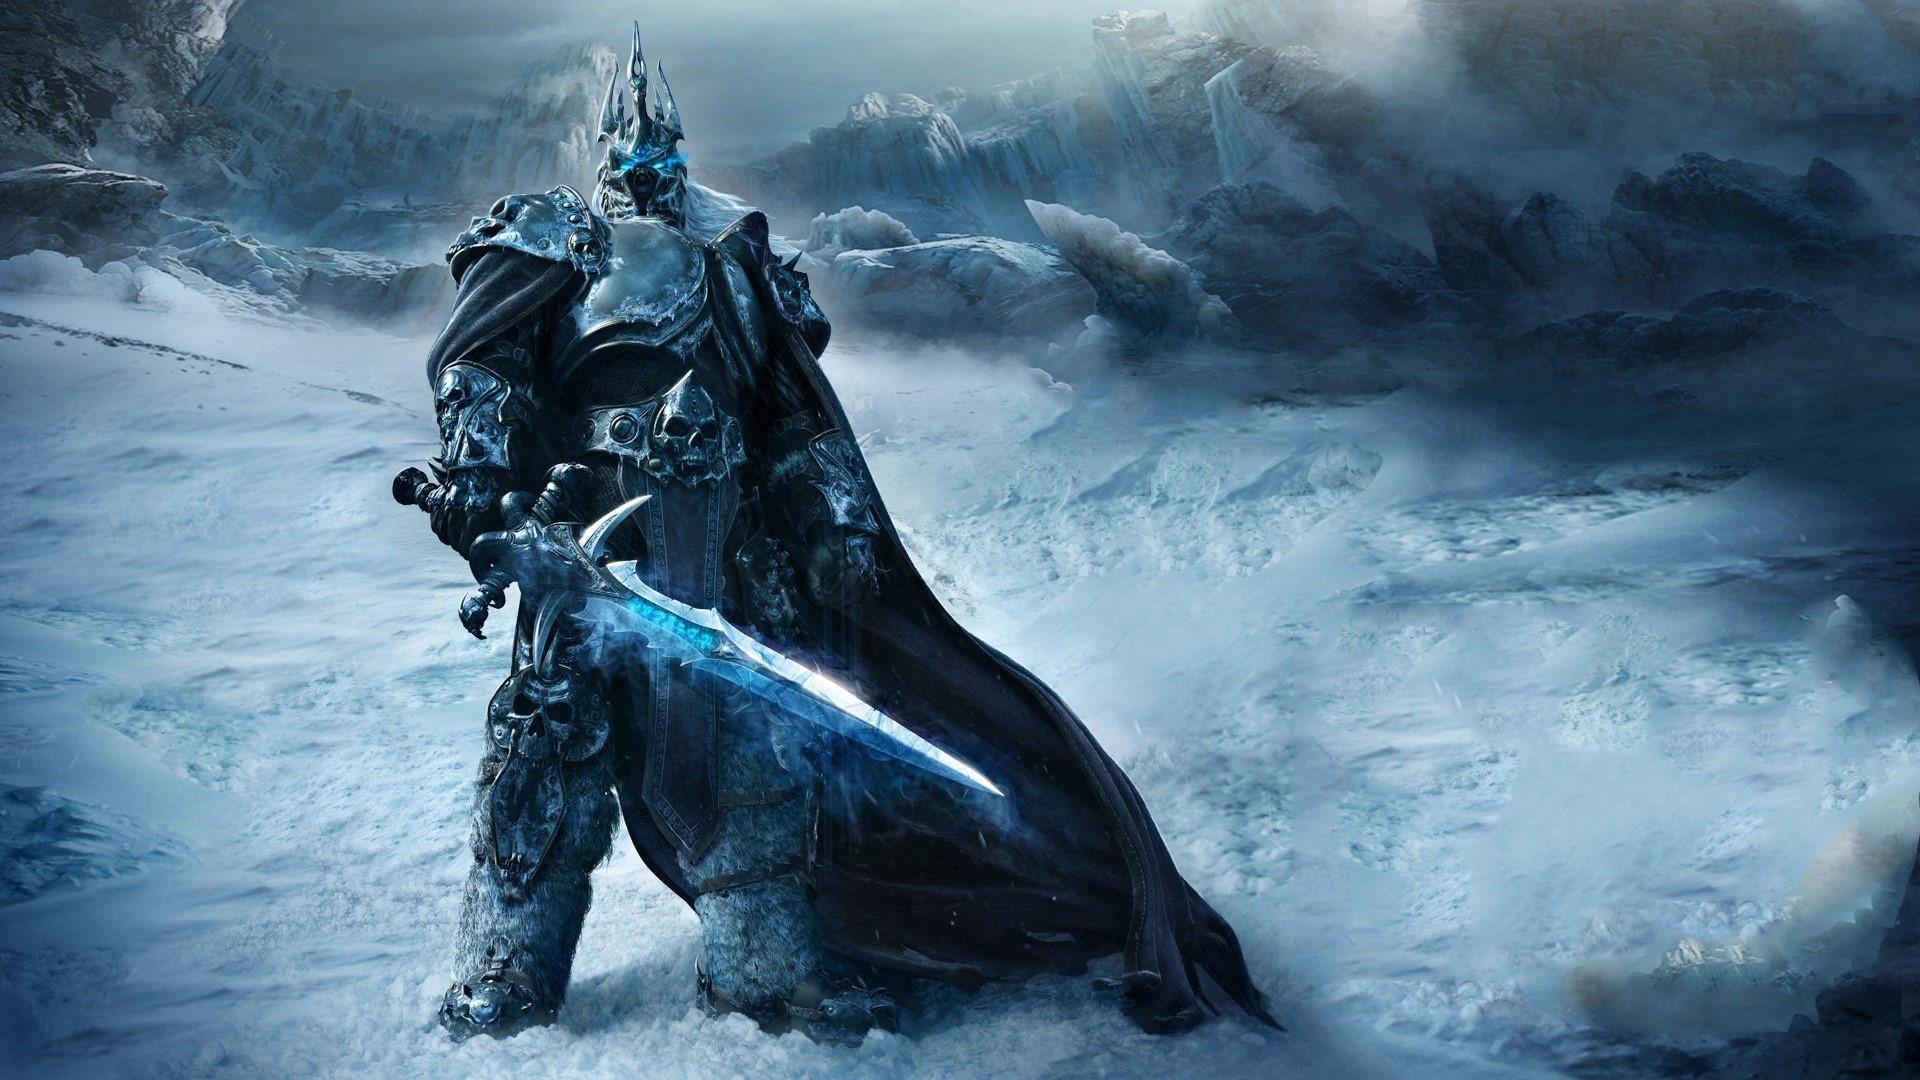 Fondos de pantalla World of Warcraft: Wrath of the Lich King